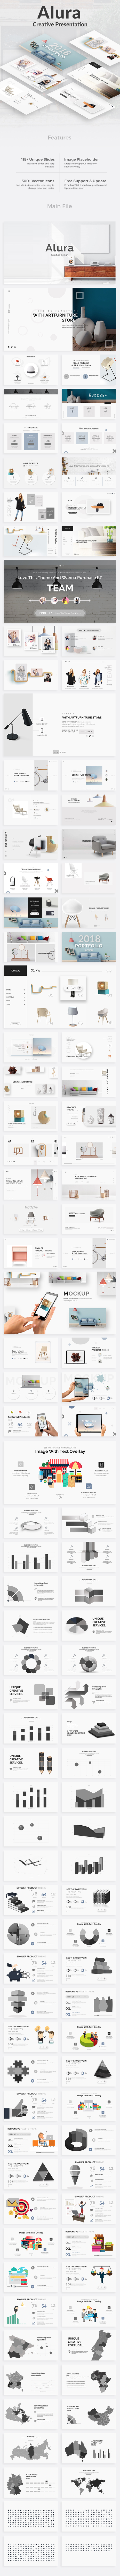 Alura Creative Google Slide Template - Google Slides Presentation Templates